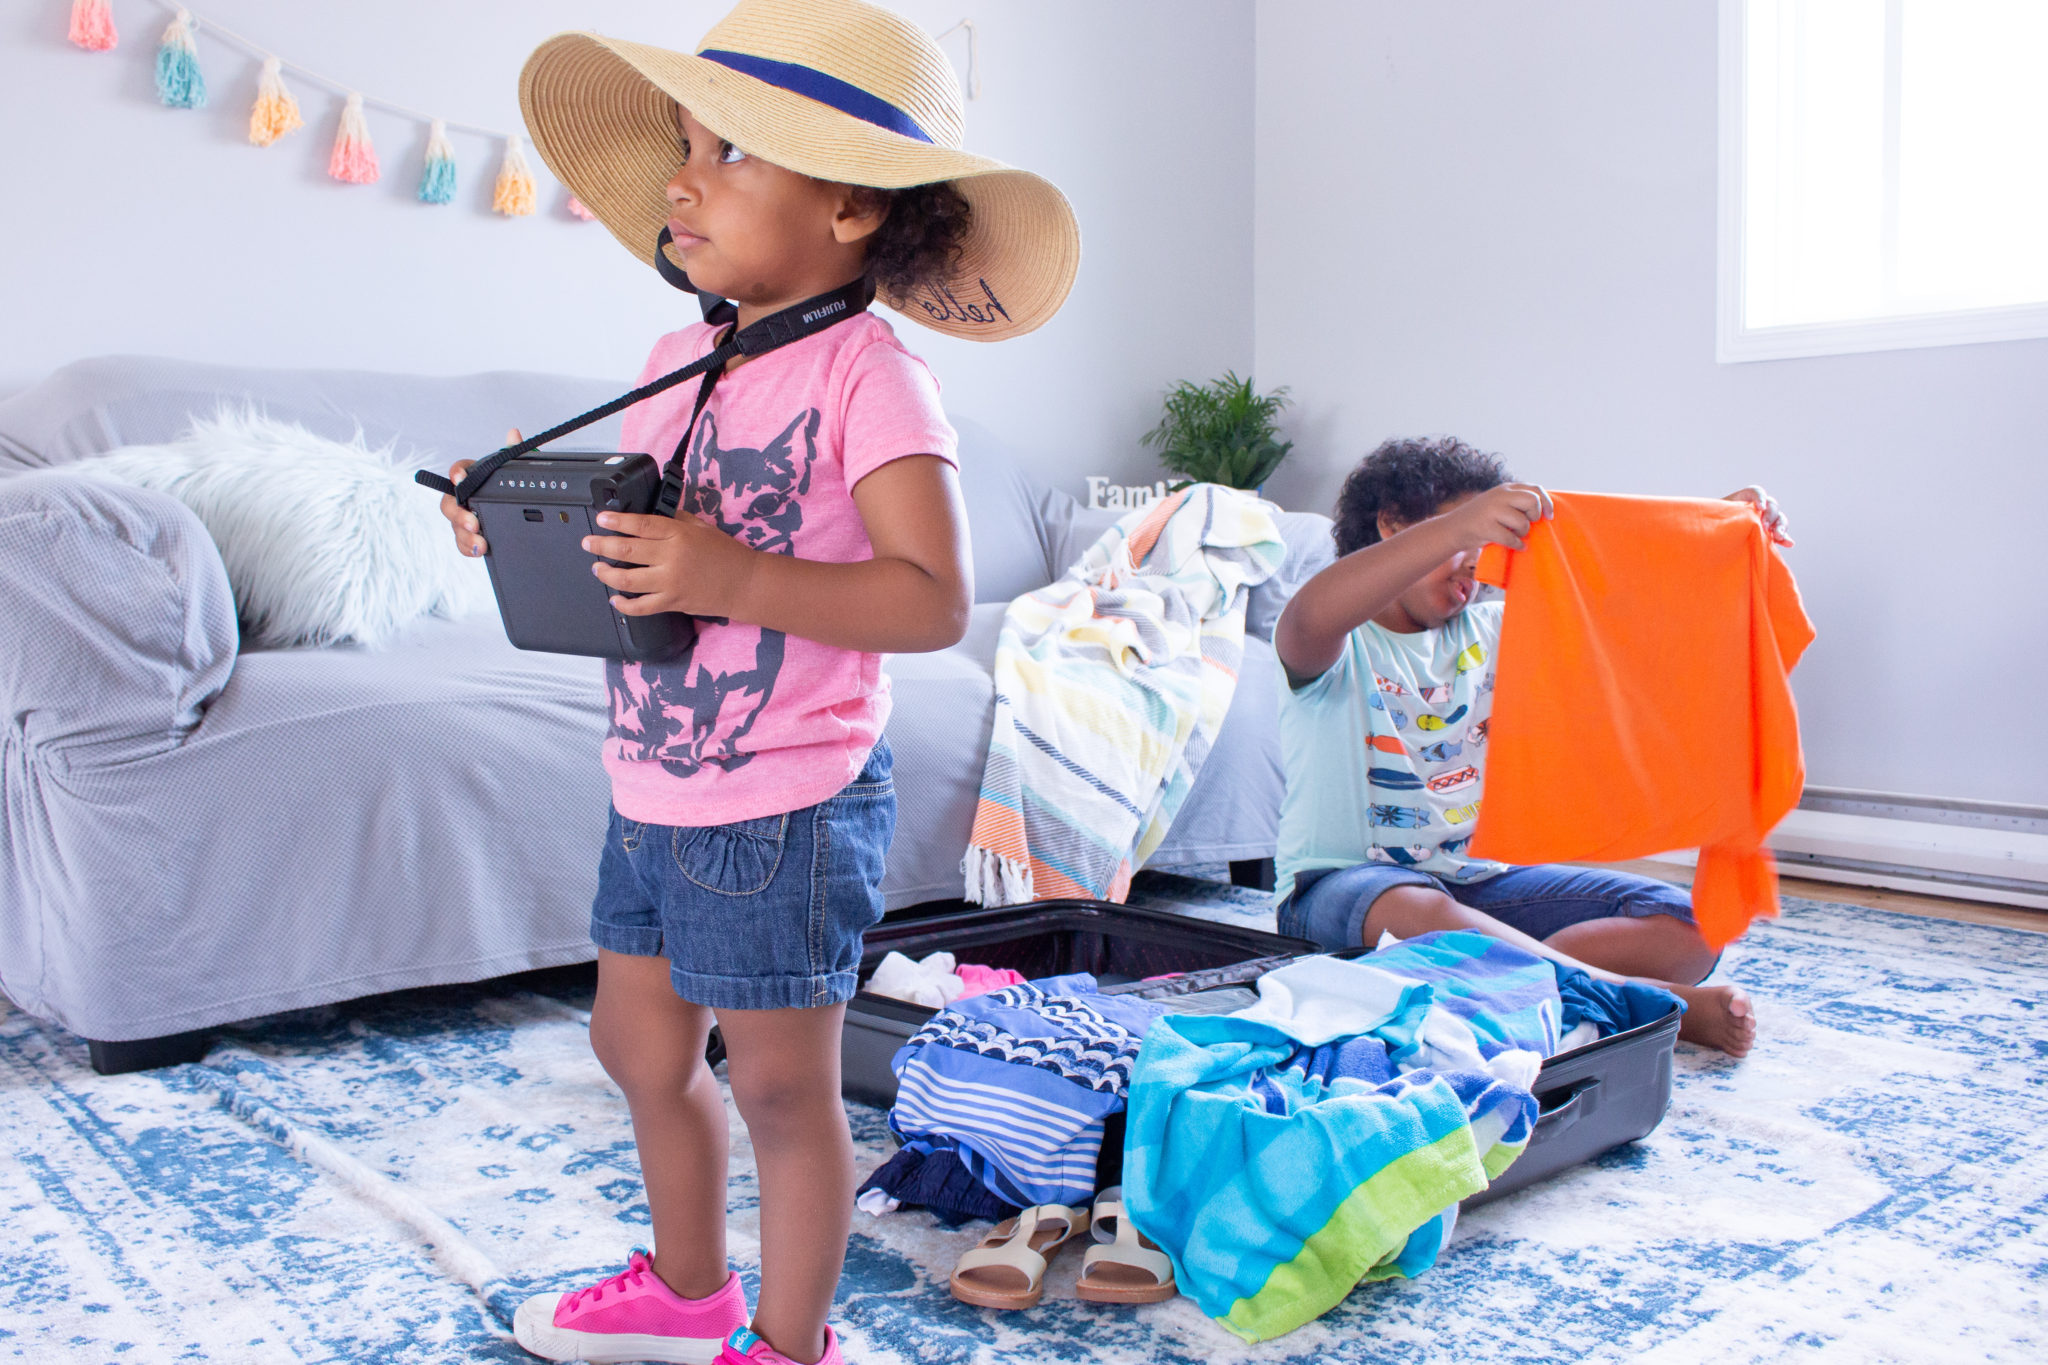 Family Travel | 3 Tips for Traveling With Kids This Summer